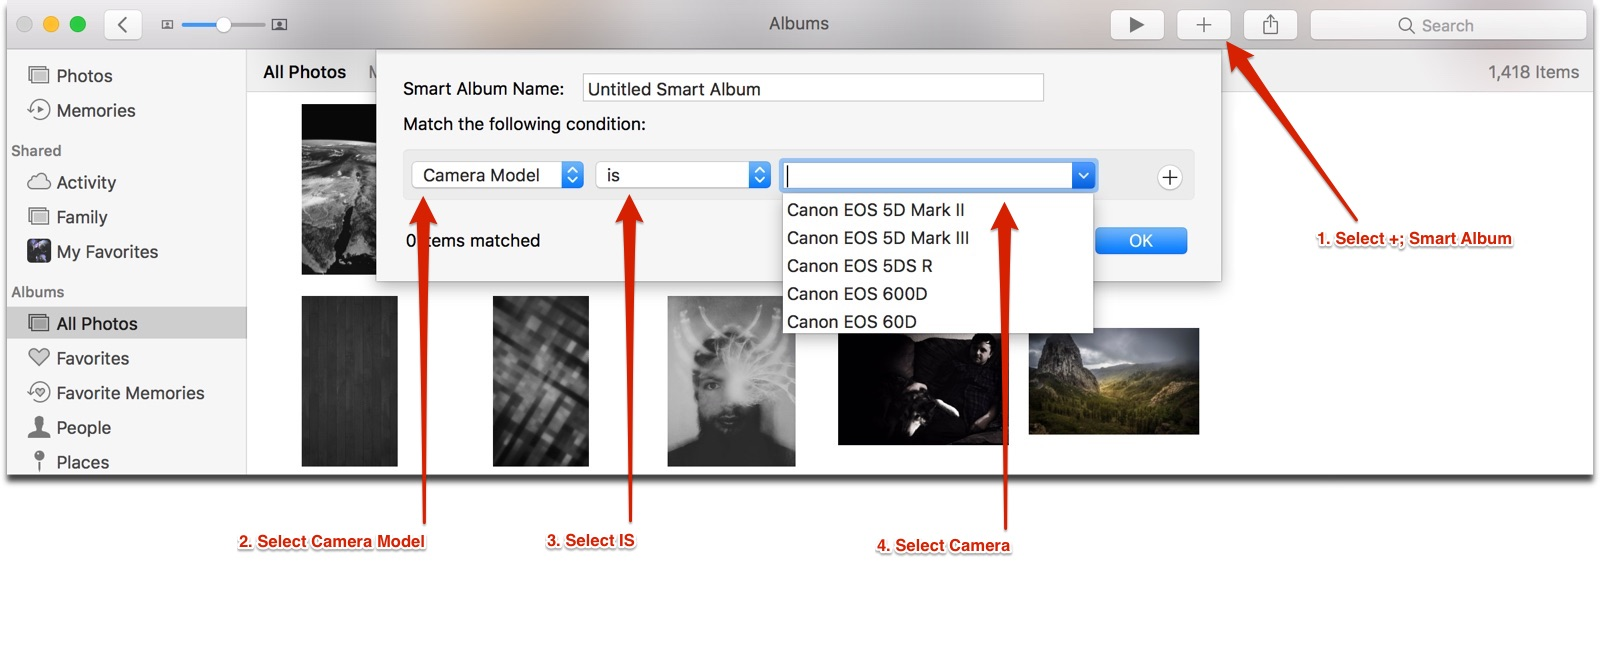 smart album options in apple photos